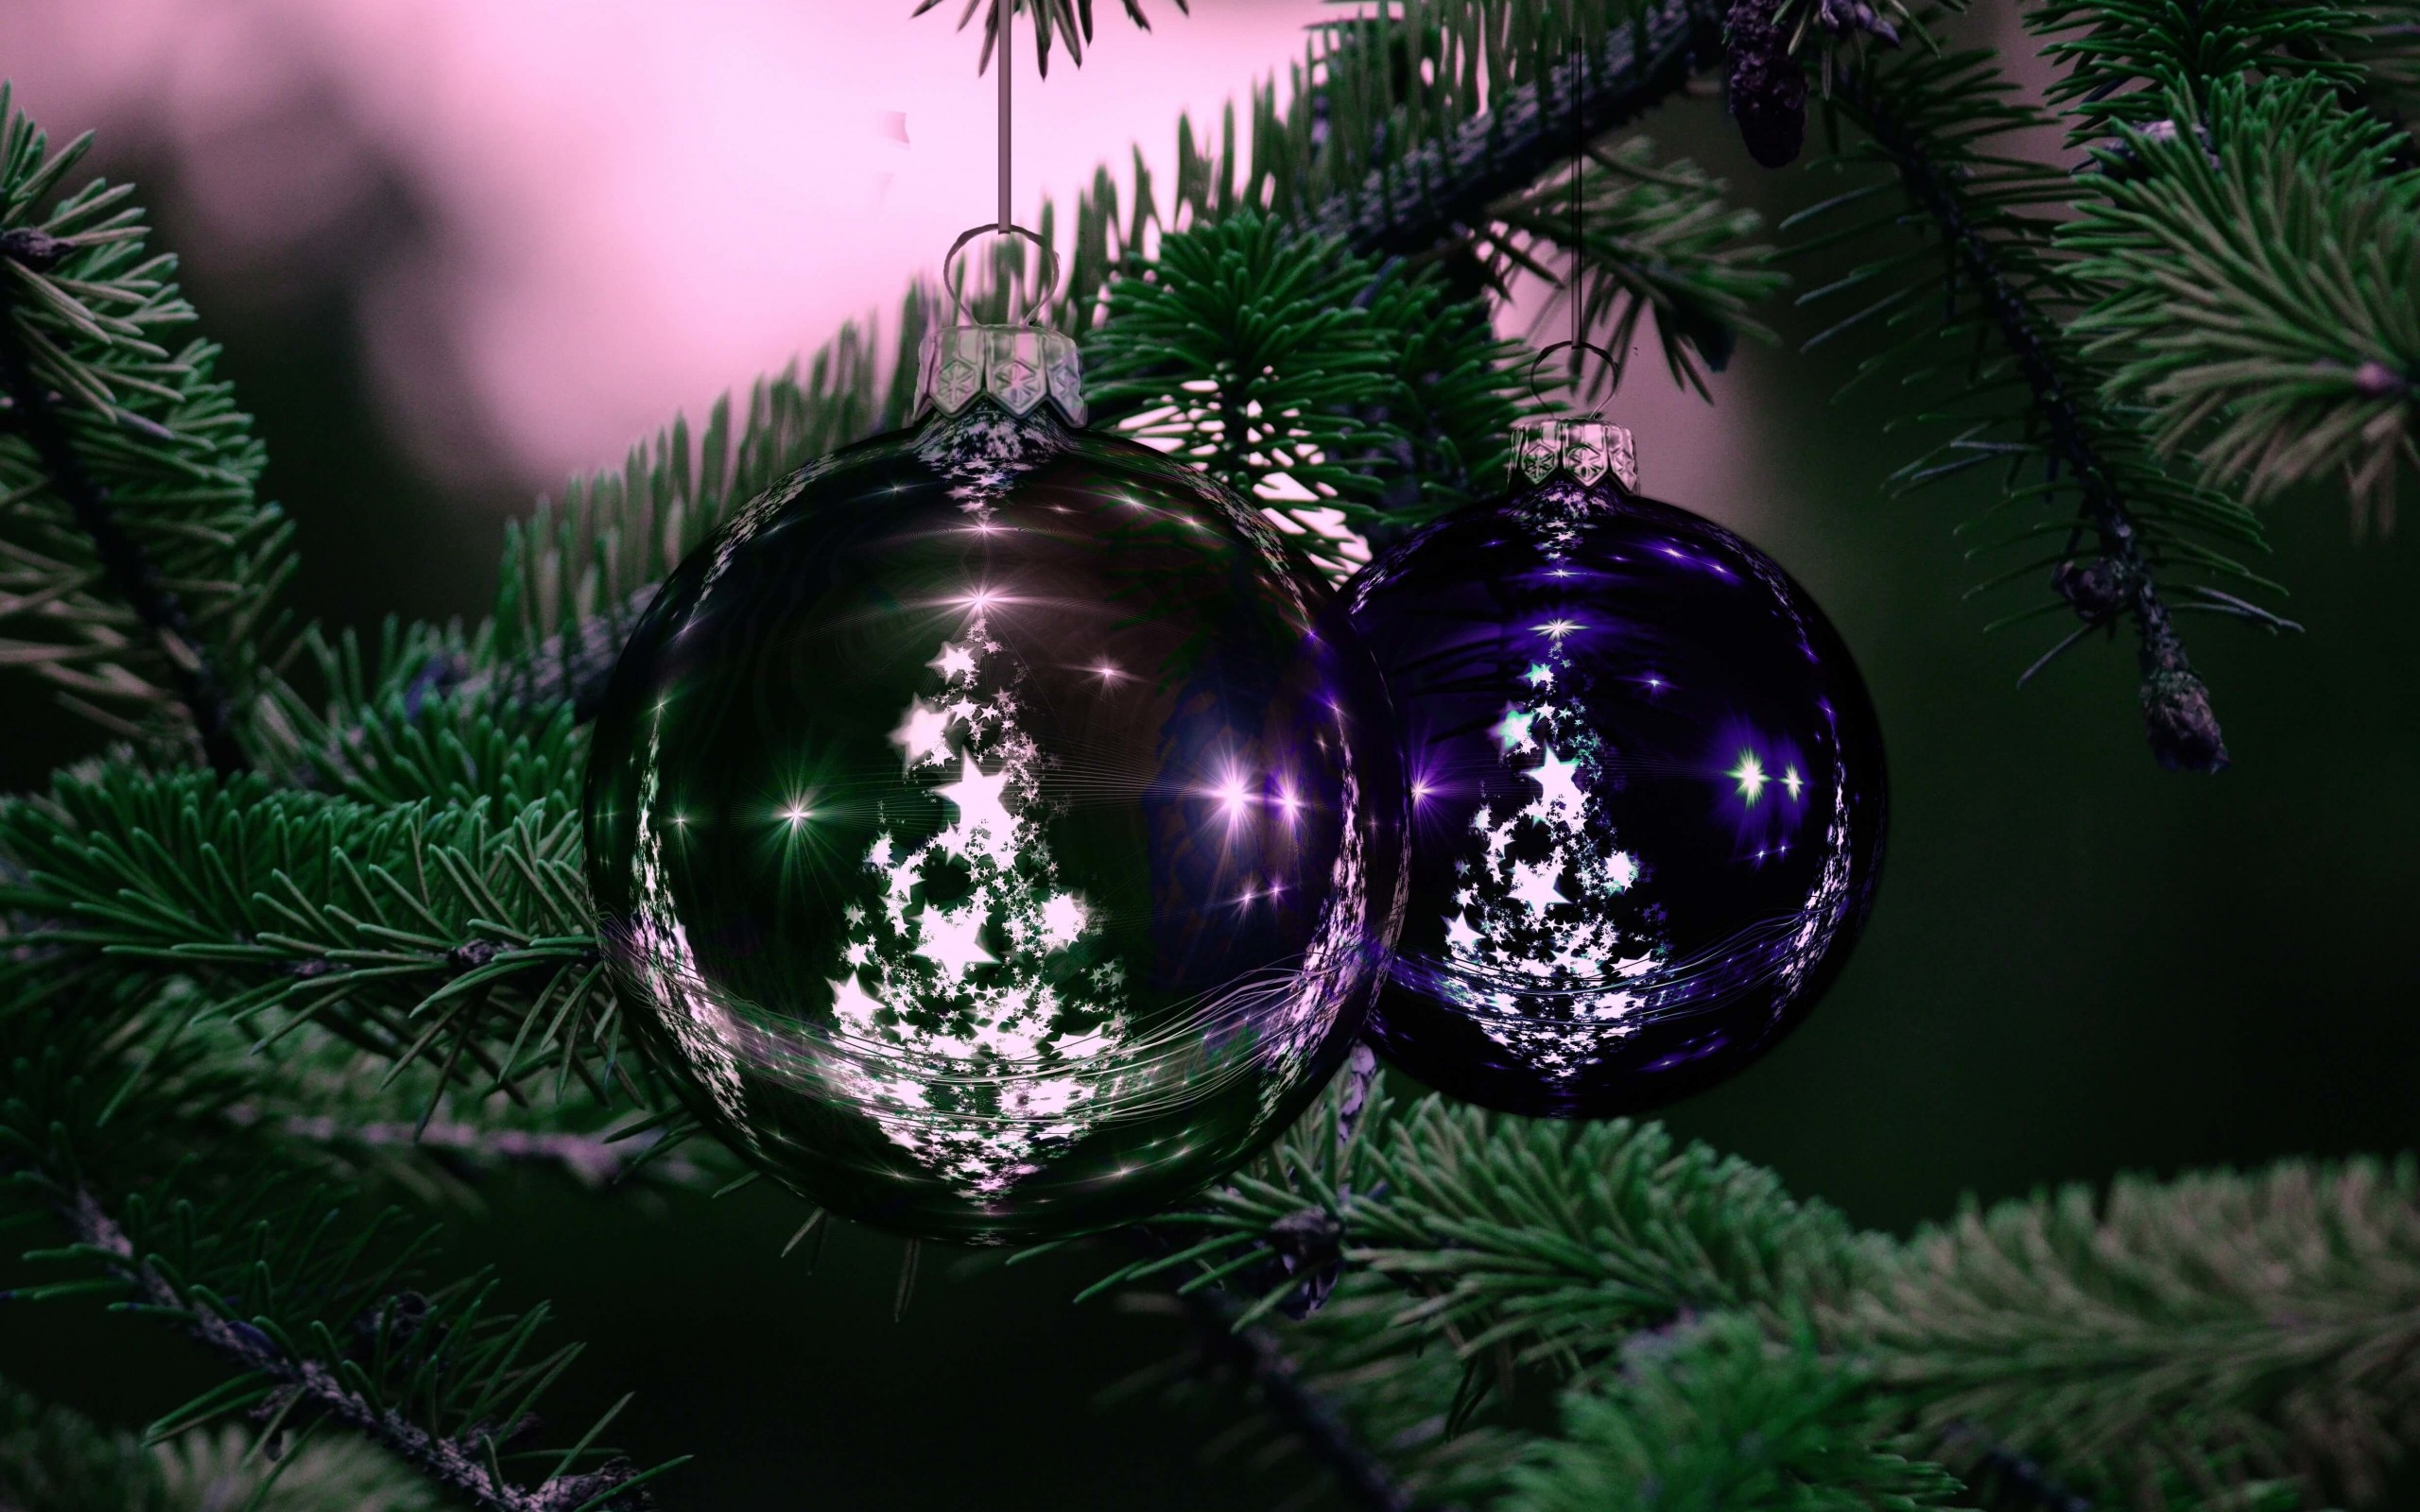 Beautiful Christmas Tree Ornaments Wallpaper for Desktop 2560x1600